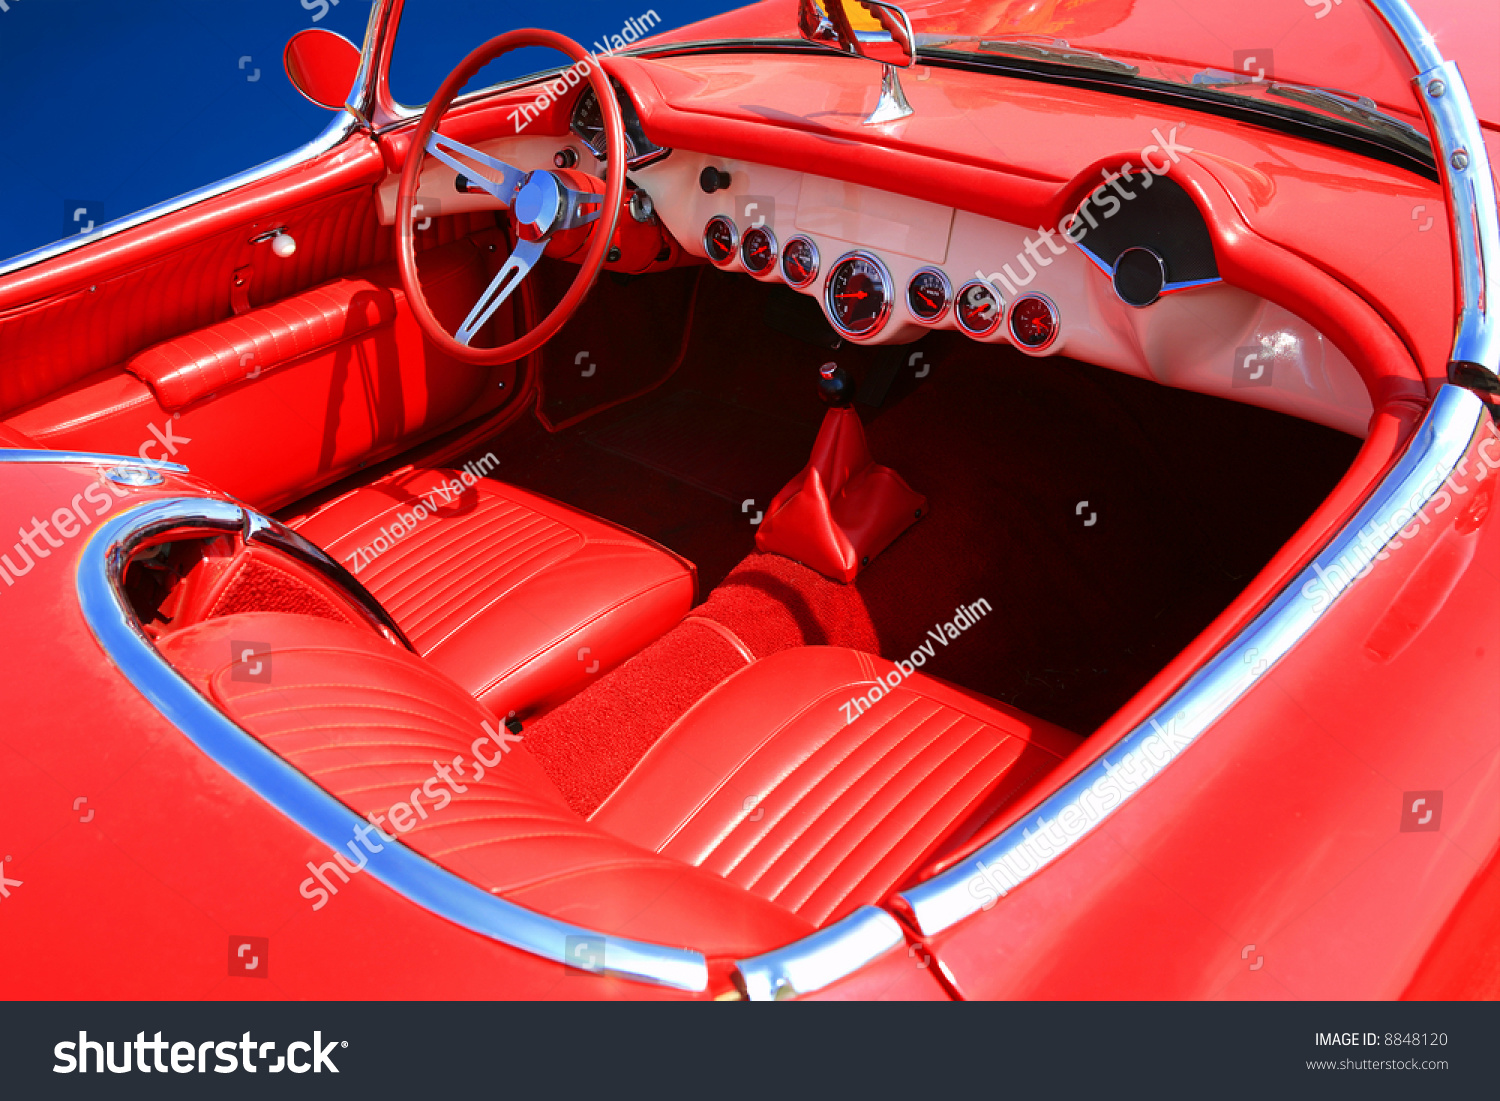 red retro interior of a vintage car stock photo 8848120 shutterstock. Black Bedroom Furniture Sets. Home Design Ideas